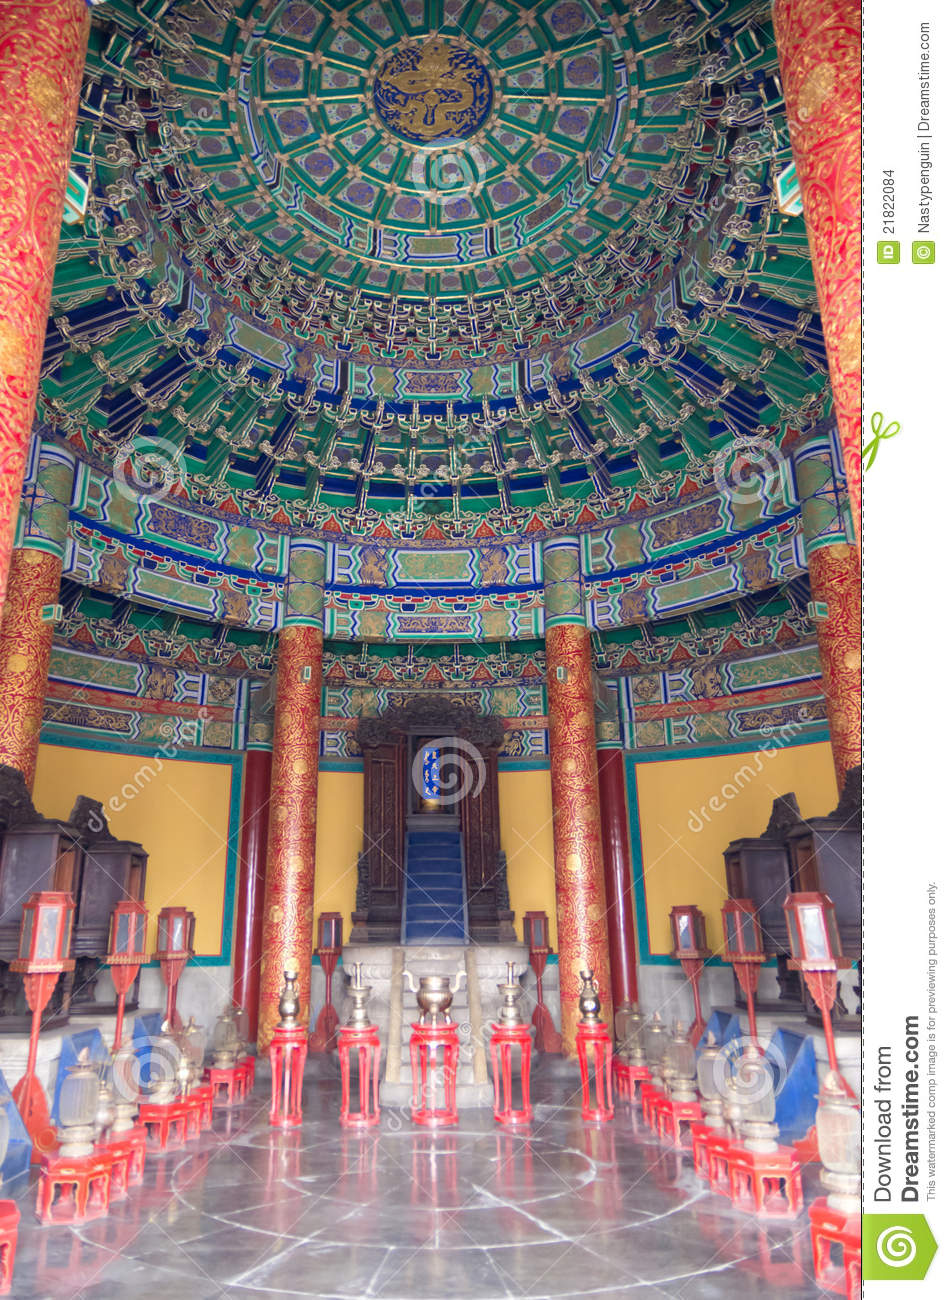 Imperial Vault Of Heaven Stock Images.